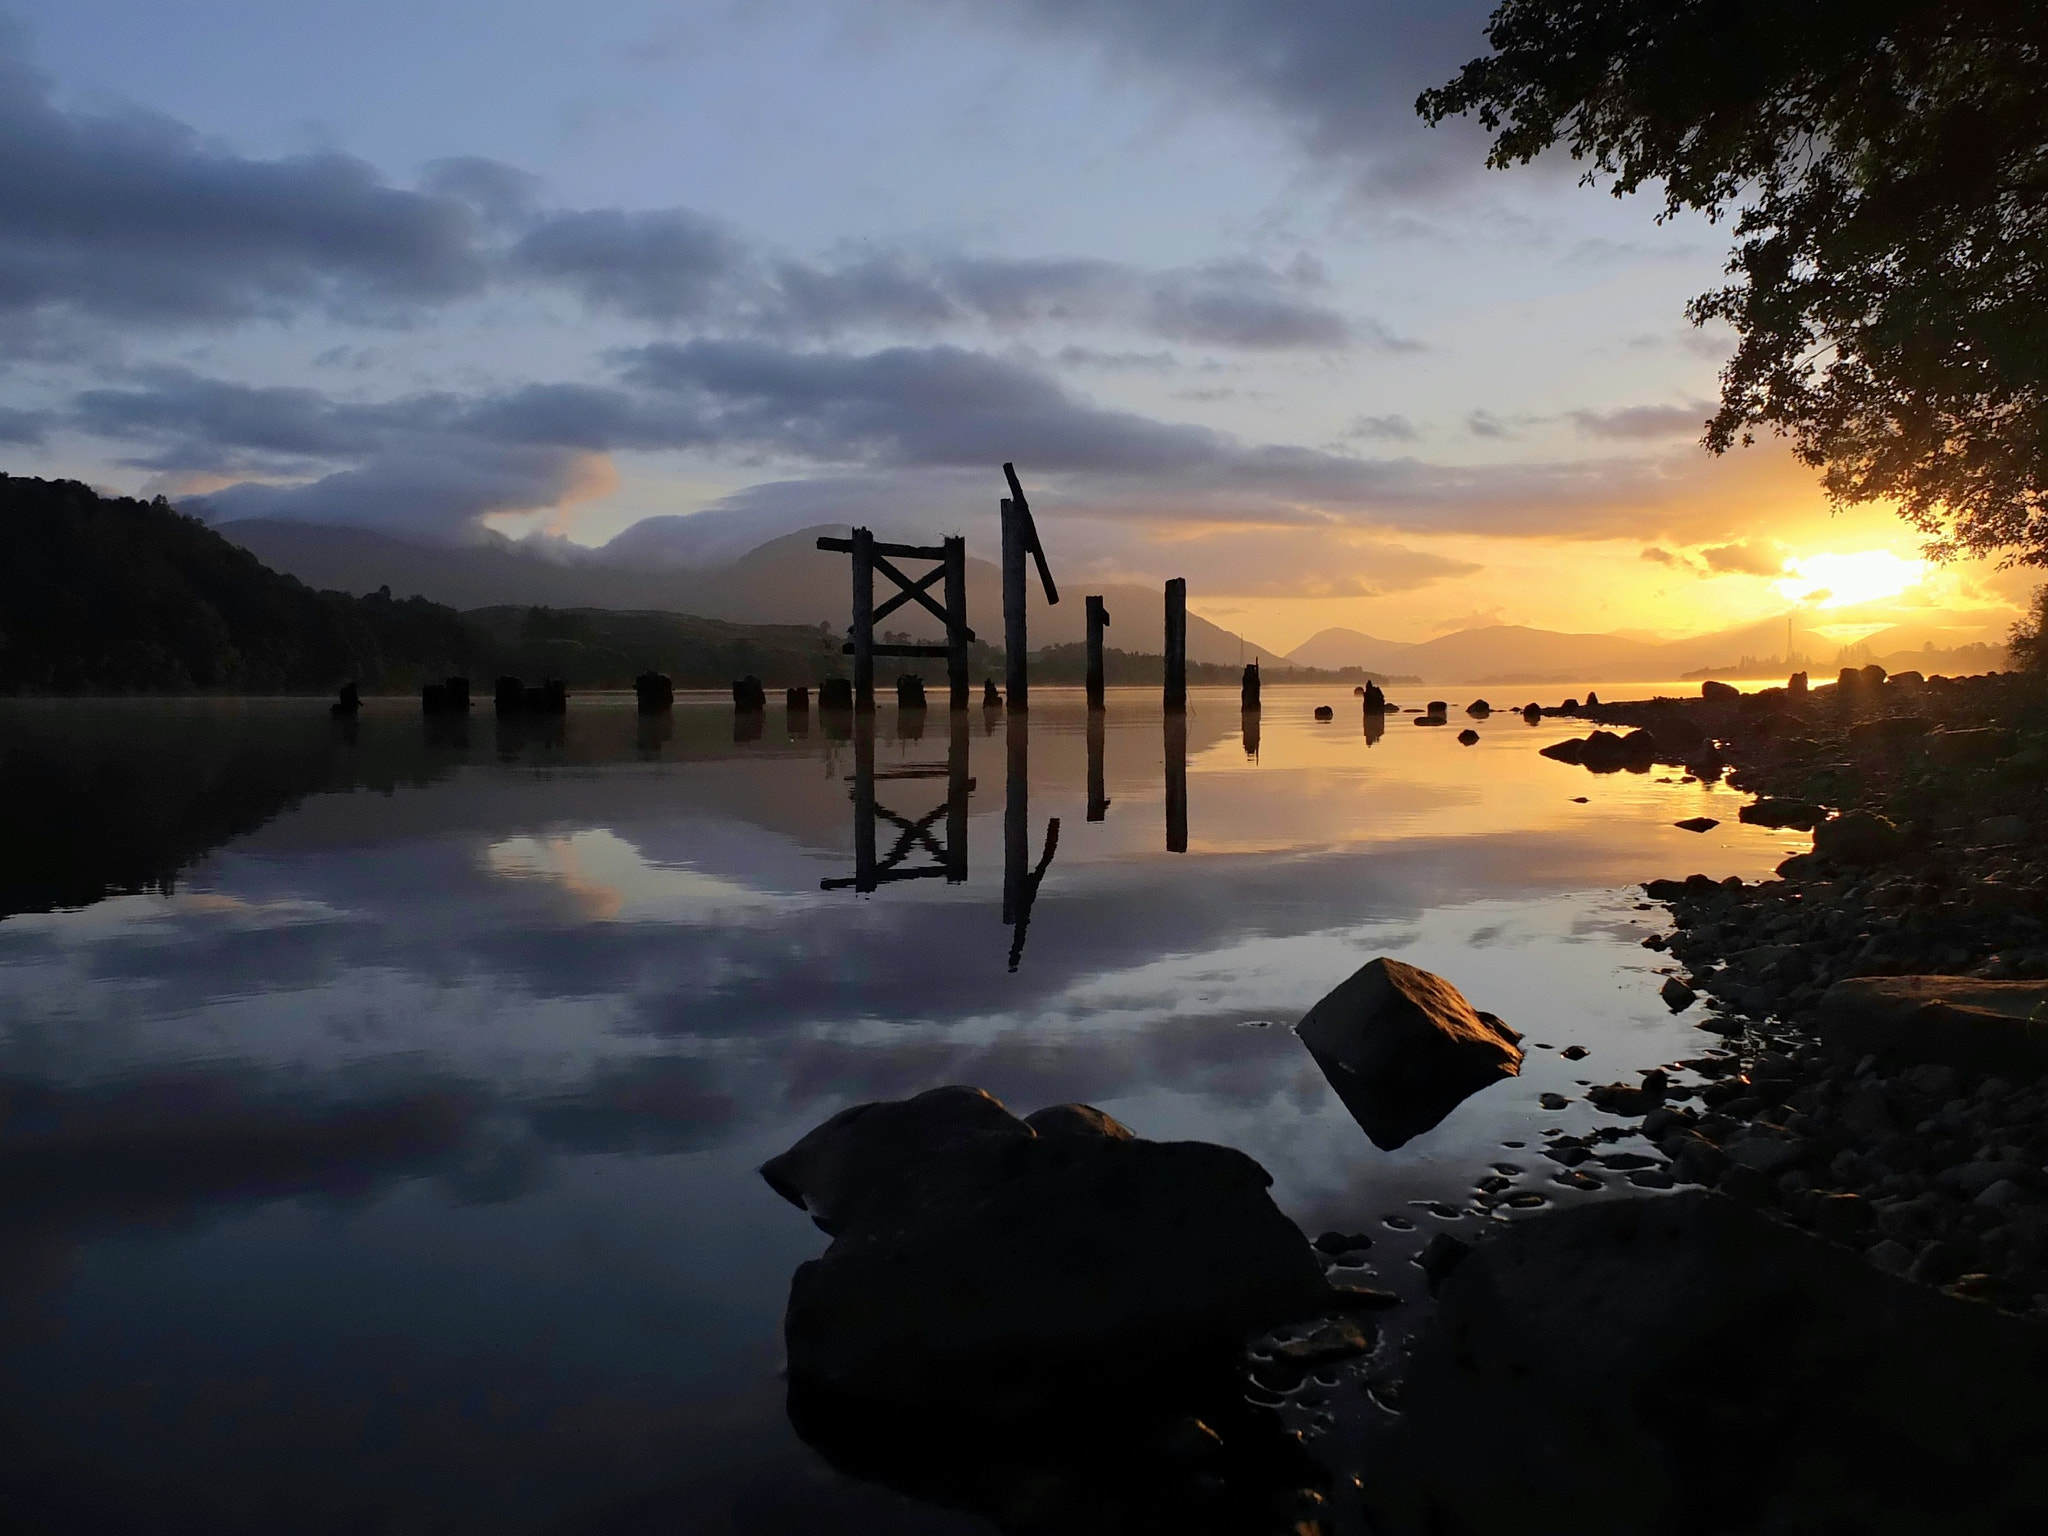 Photograph Sunrise in the Scottish highlands. by Ian Bradburn on 500px